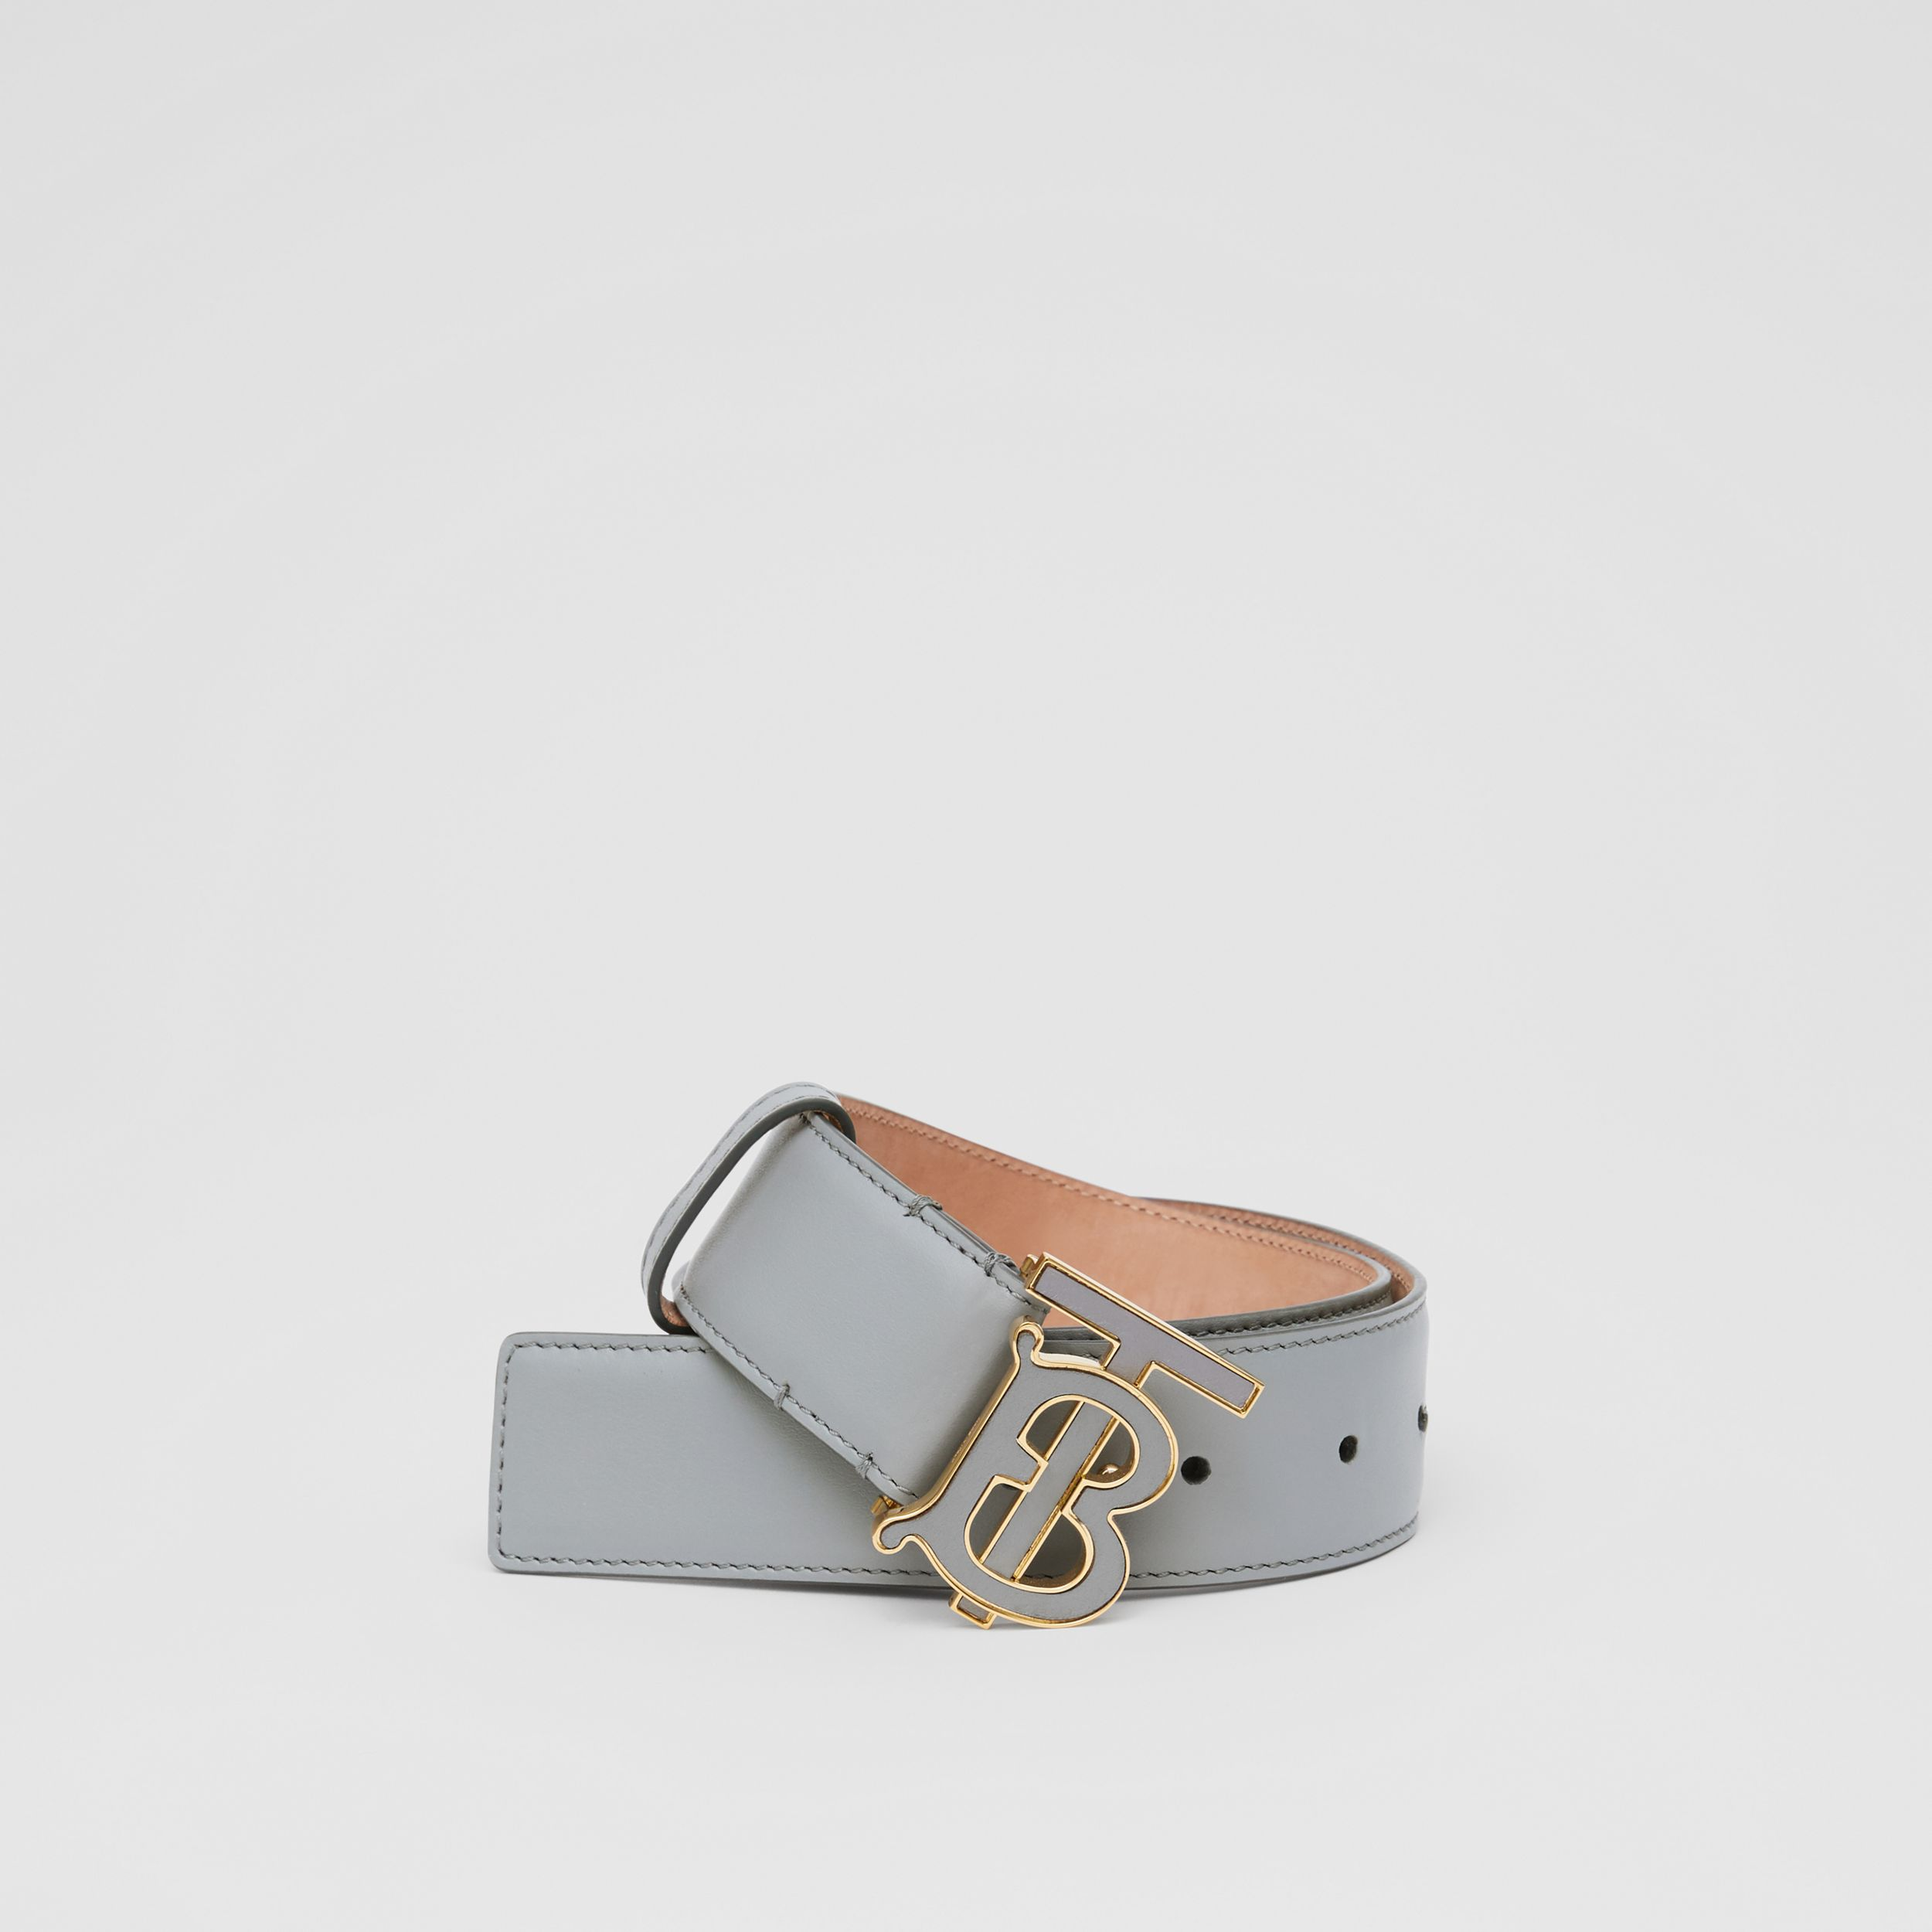 Monogram Motif Leather Belt in Cloud Grey | Burberry - 1